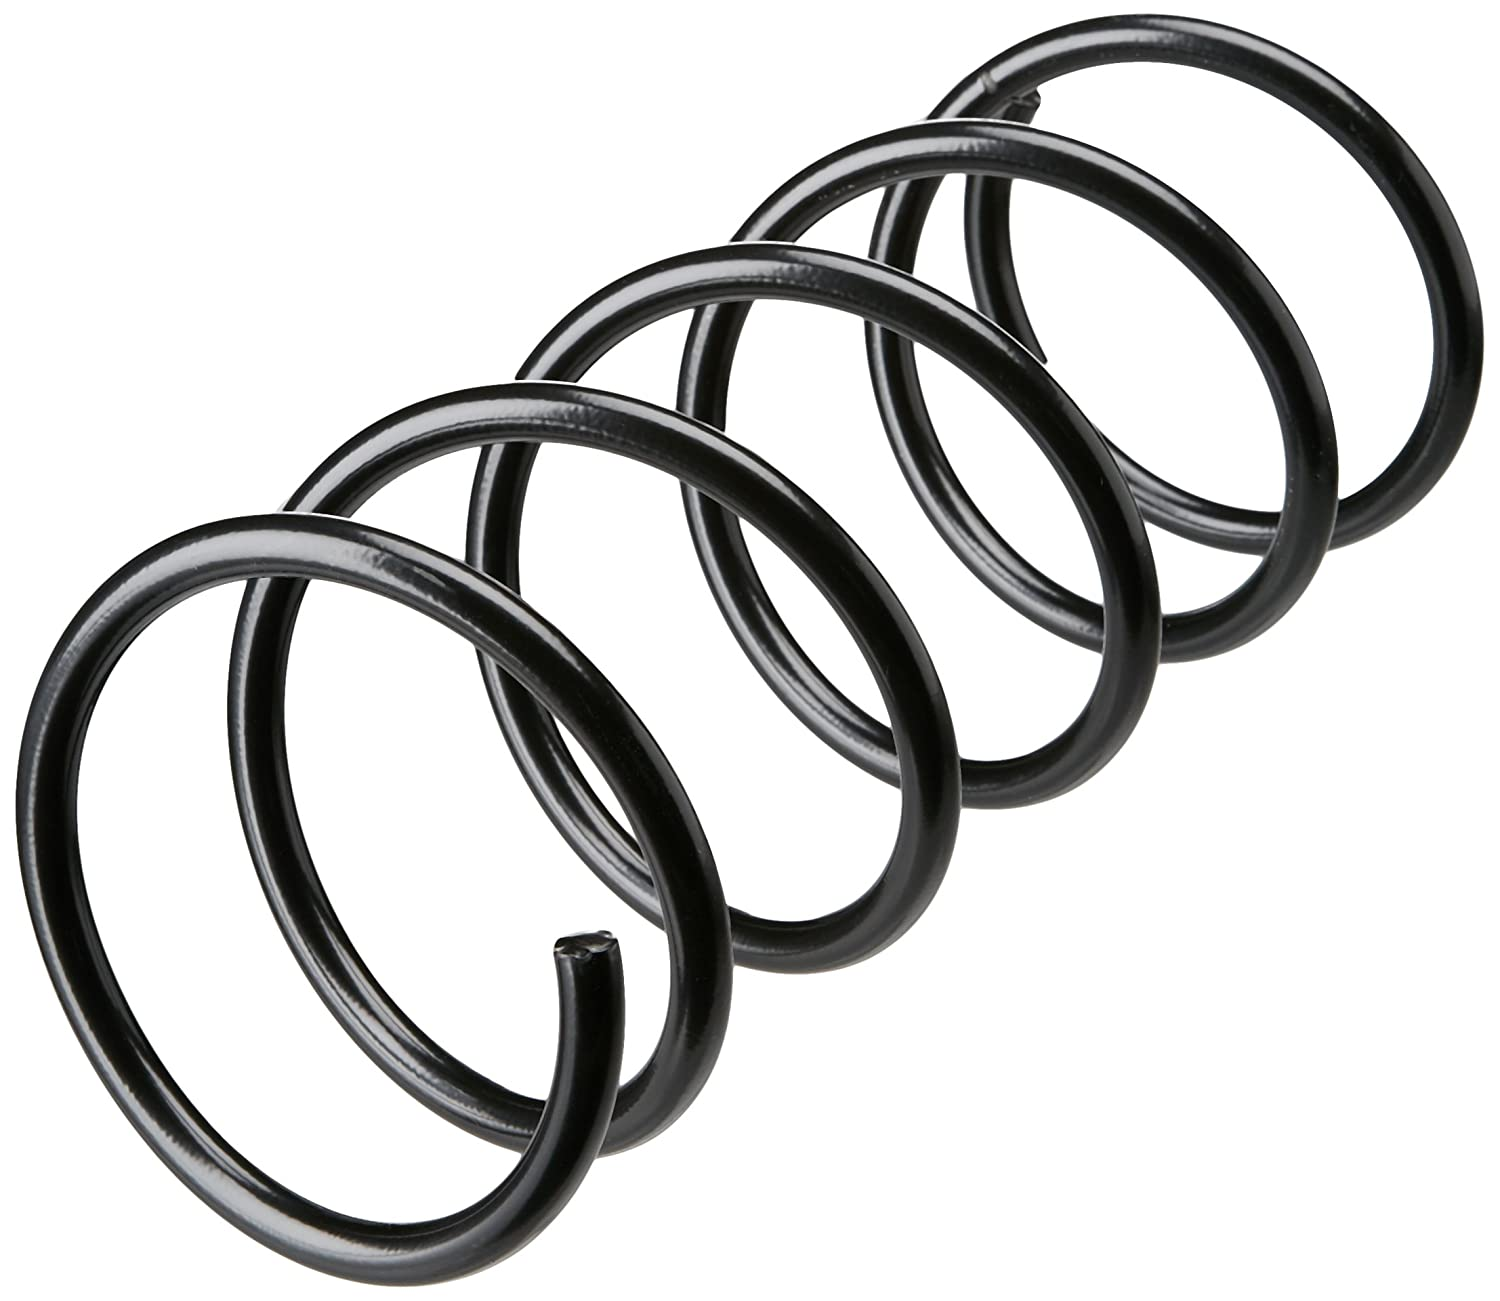 Kilen 13373 Coil Spring Lesjofers uk ltd 4027558